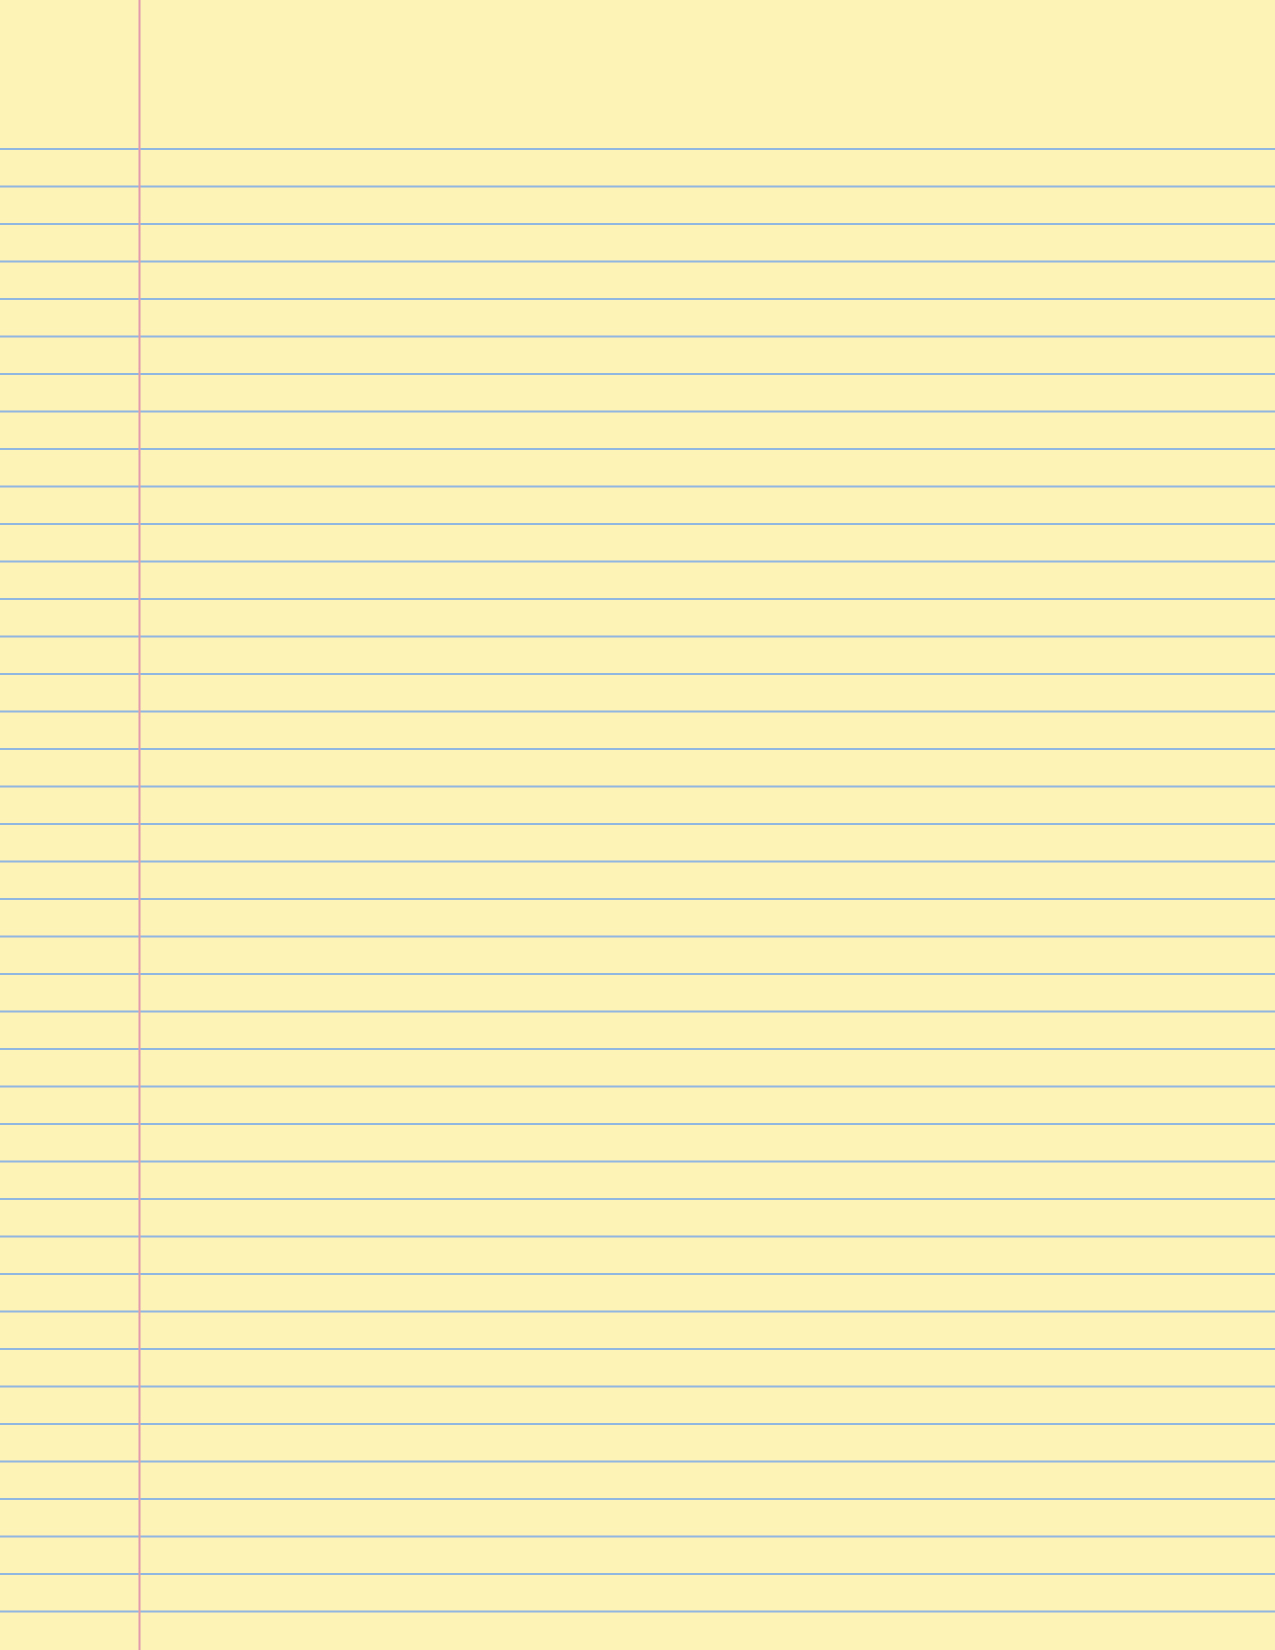 Notebook clipart lined paper Yellow lined 2 paper ClipartBarn